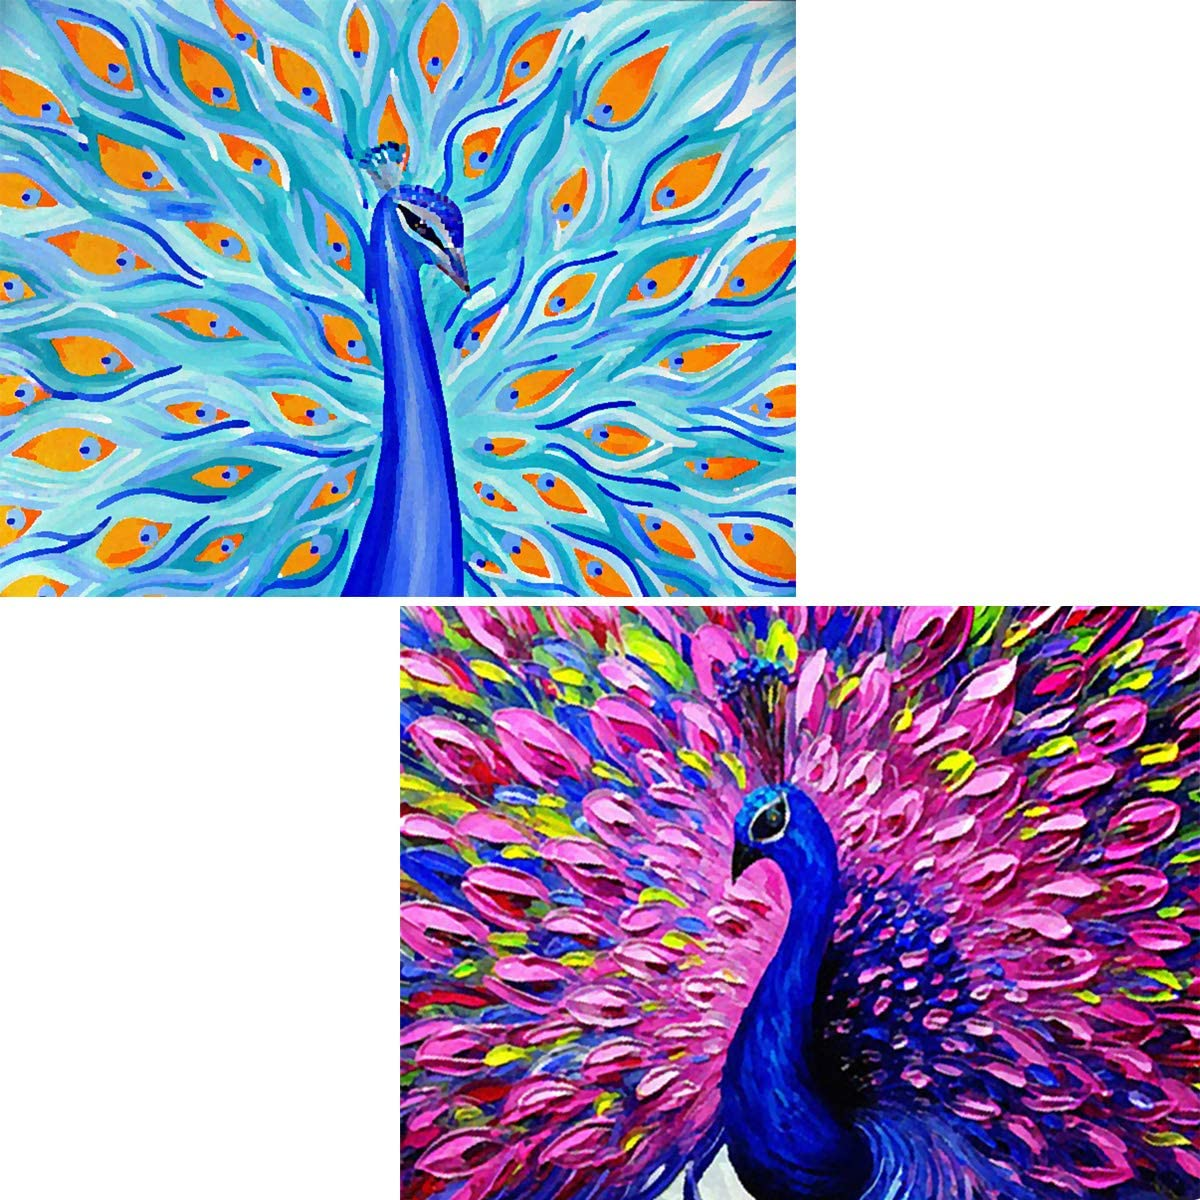 5D DIY Diamond Painting Full Drill Sapphire Peacock by Number Kits, Blue and Purple Peafowl Embroidery Rhinestone Paint with Diamonds Art Pet Cross Stitch Wall Decor (12x16 inch, 2 Pack)